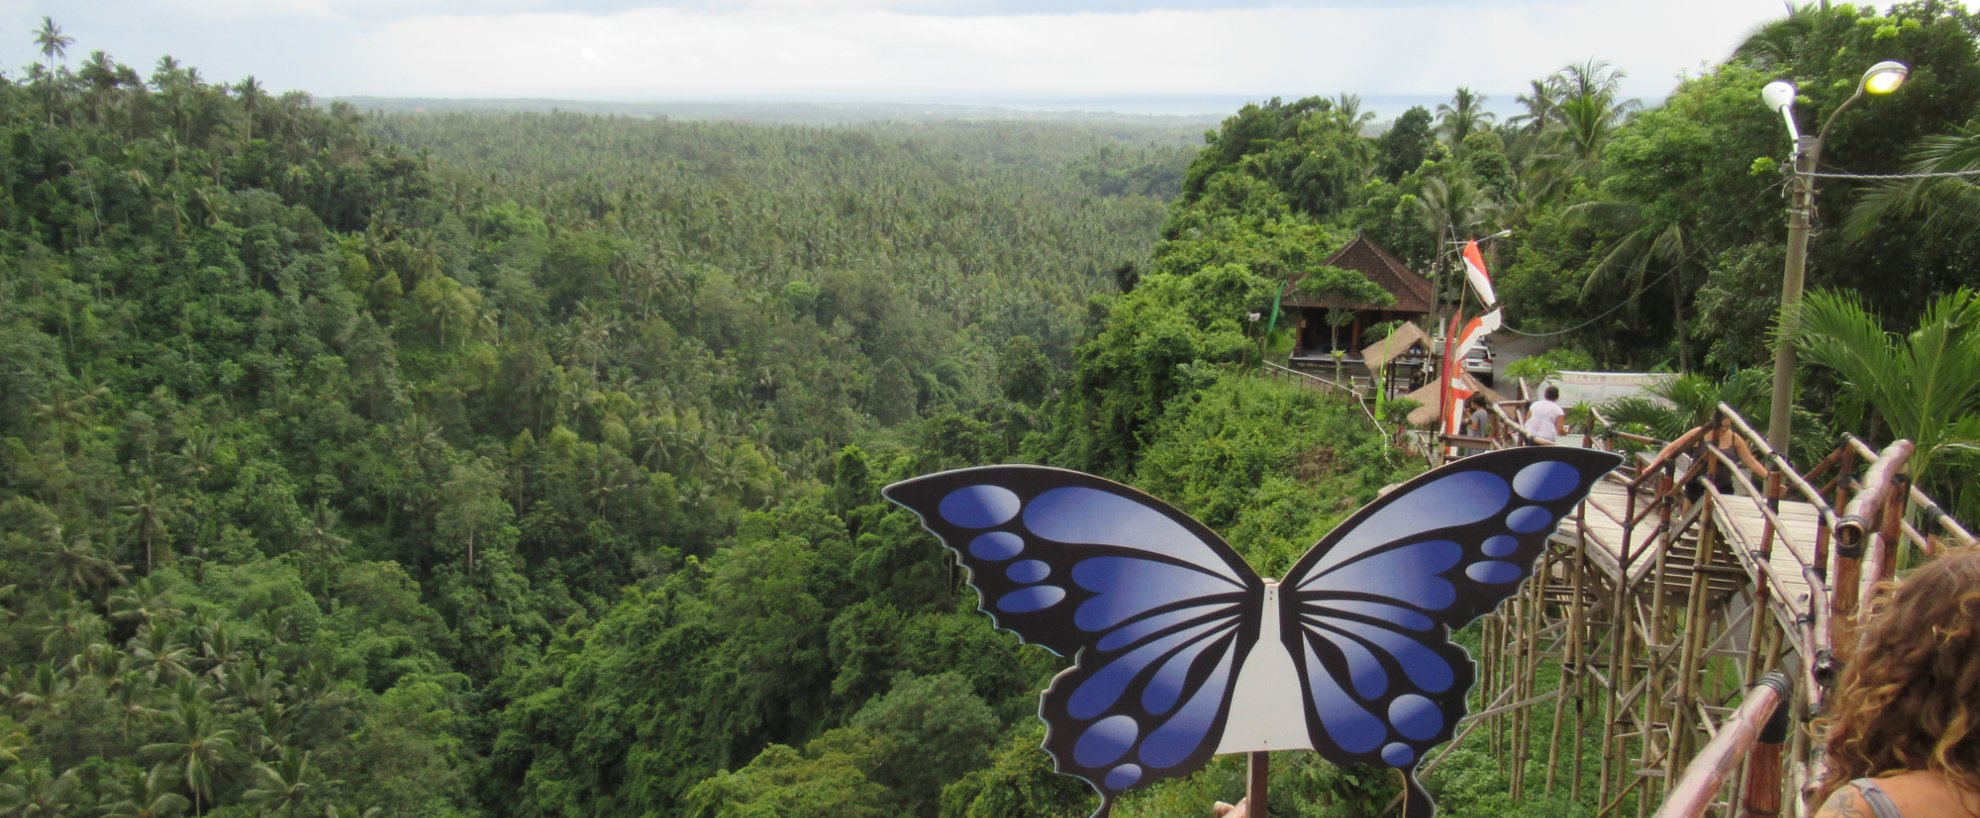 Yoga Reisen Indonesien Bali Puri Dajuma Tour Jungle Urwald Green Cliff